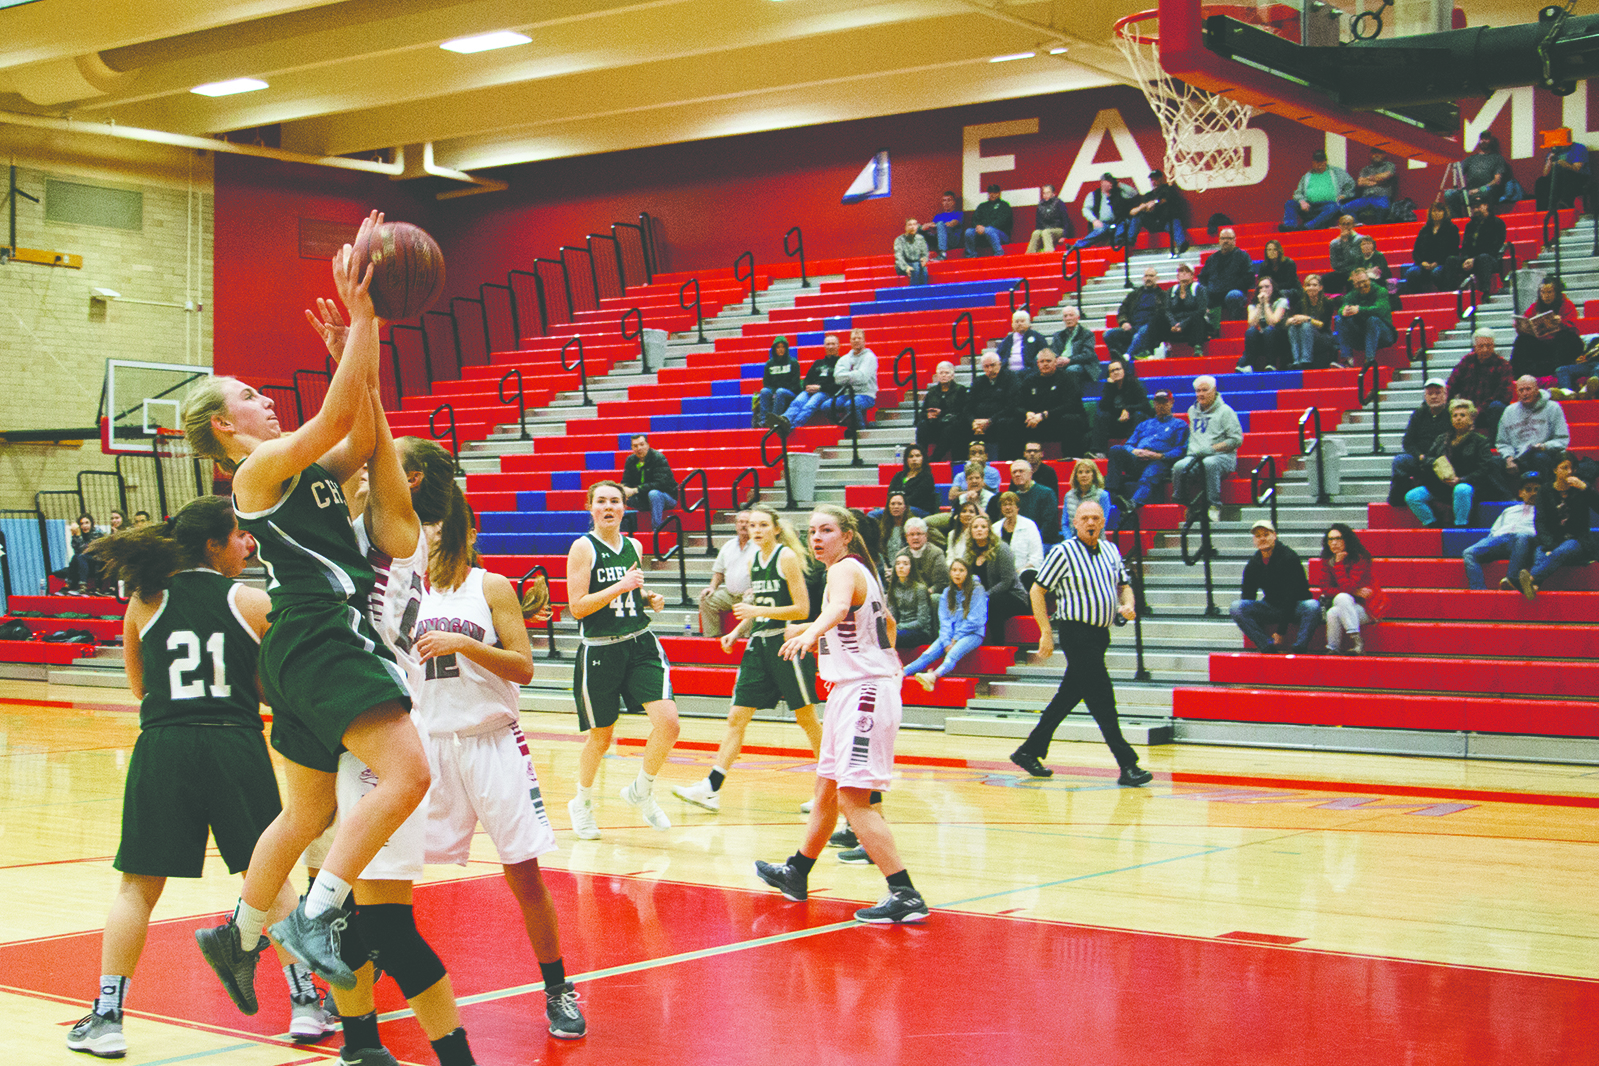 Booh Huddleston soars inside the key for a Lady Goats basket against the Okanogan Bulldogs. Okanogan defeated Chelan in the final minutes of the game, with a final score of 41-50.